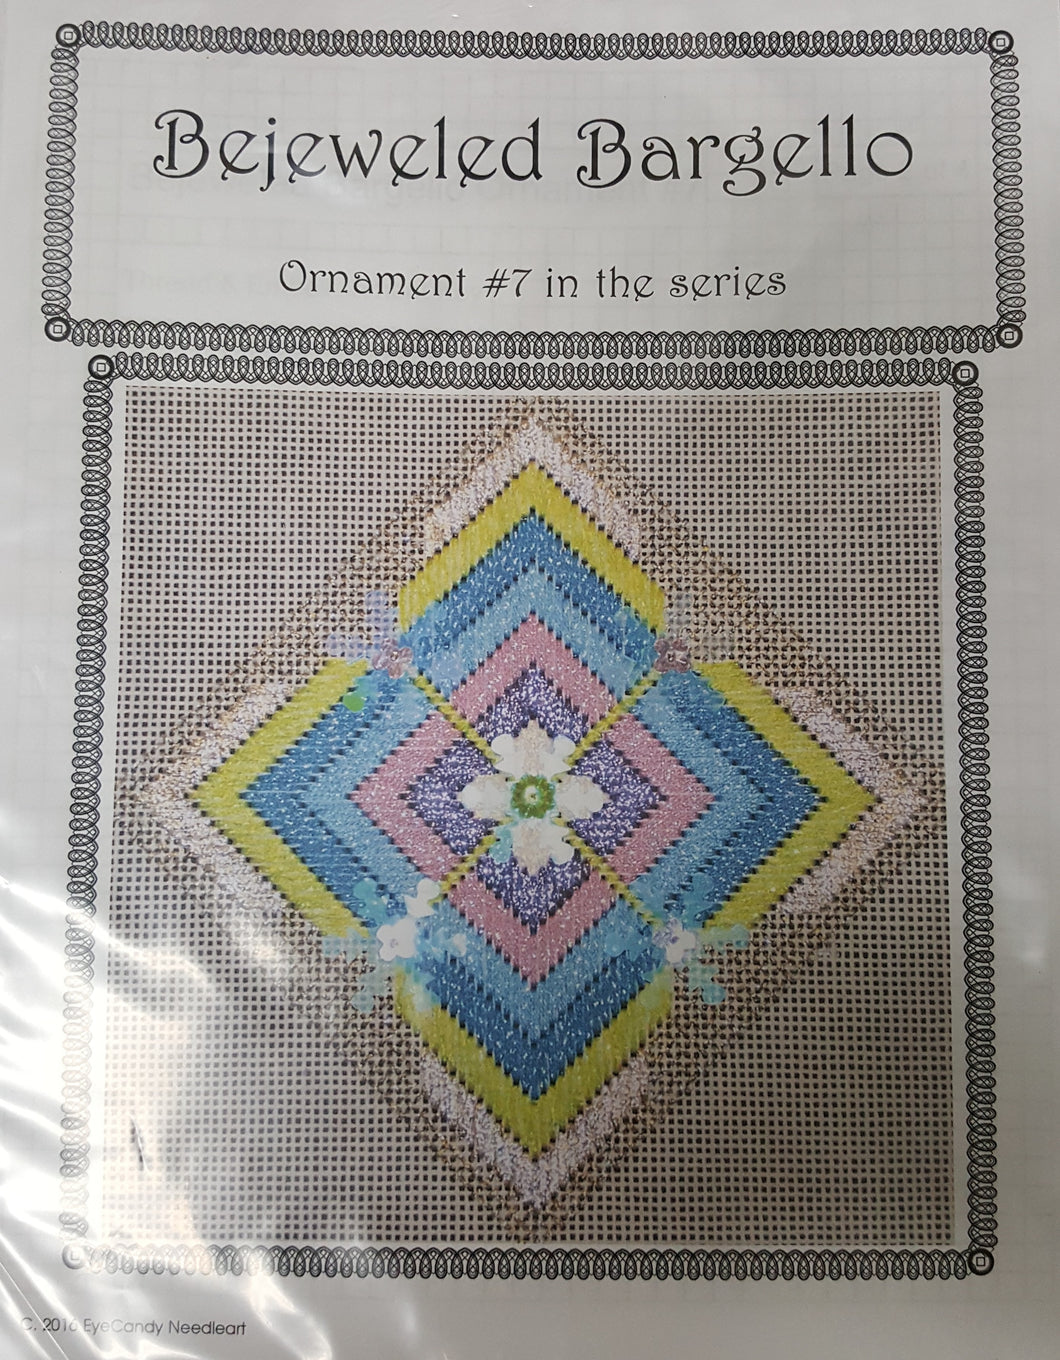 Bejeweled Bargello No. 7 18M